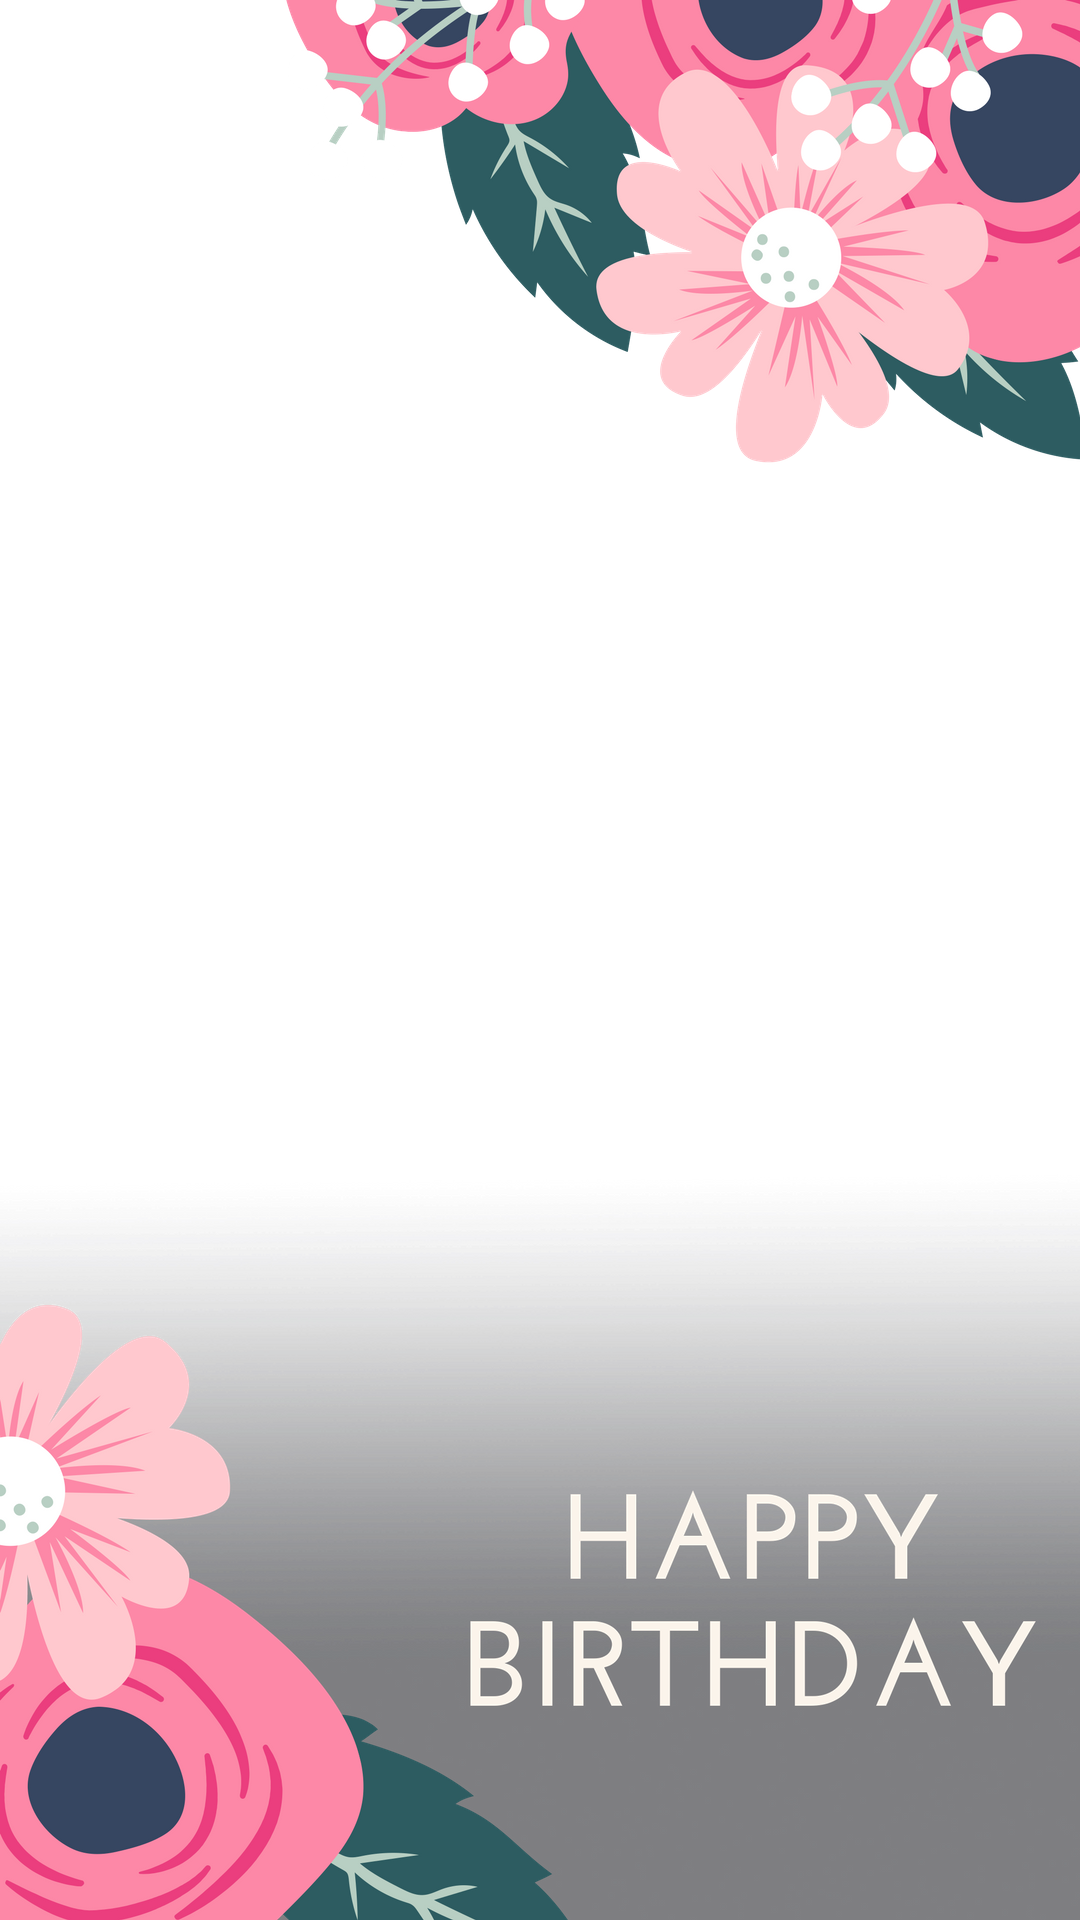 Glitter clipart gradient. Pink flowers birthday snapchat